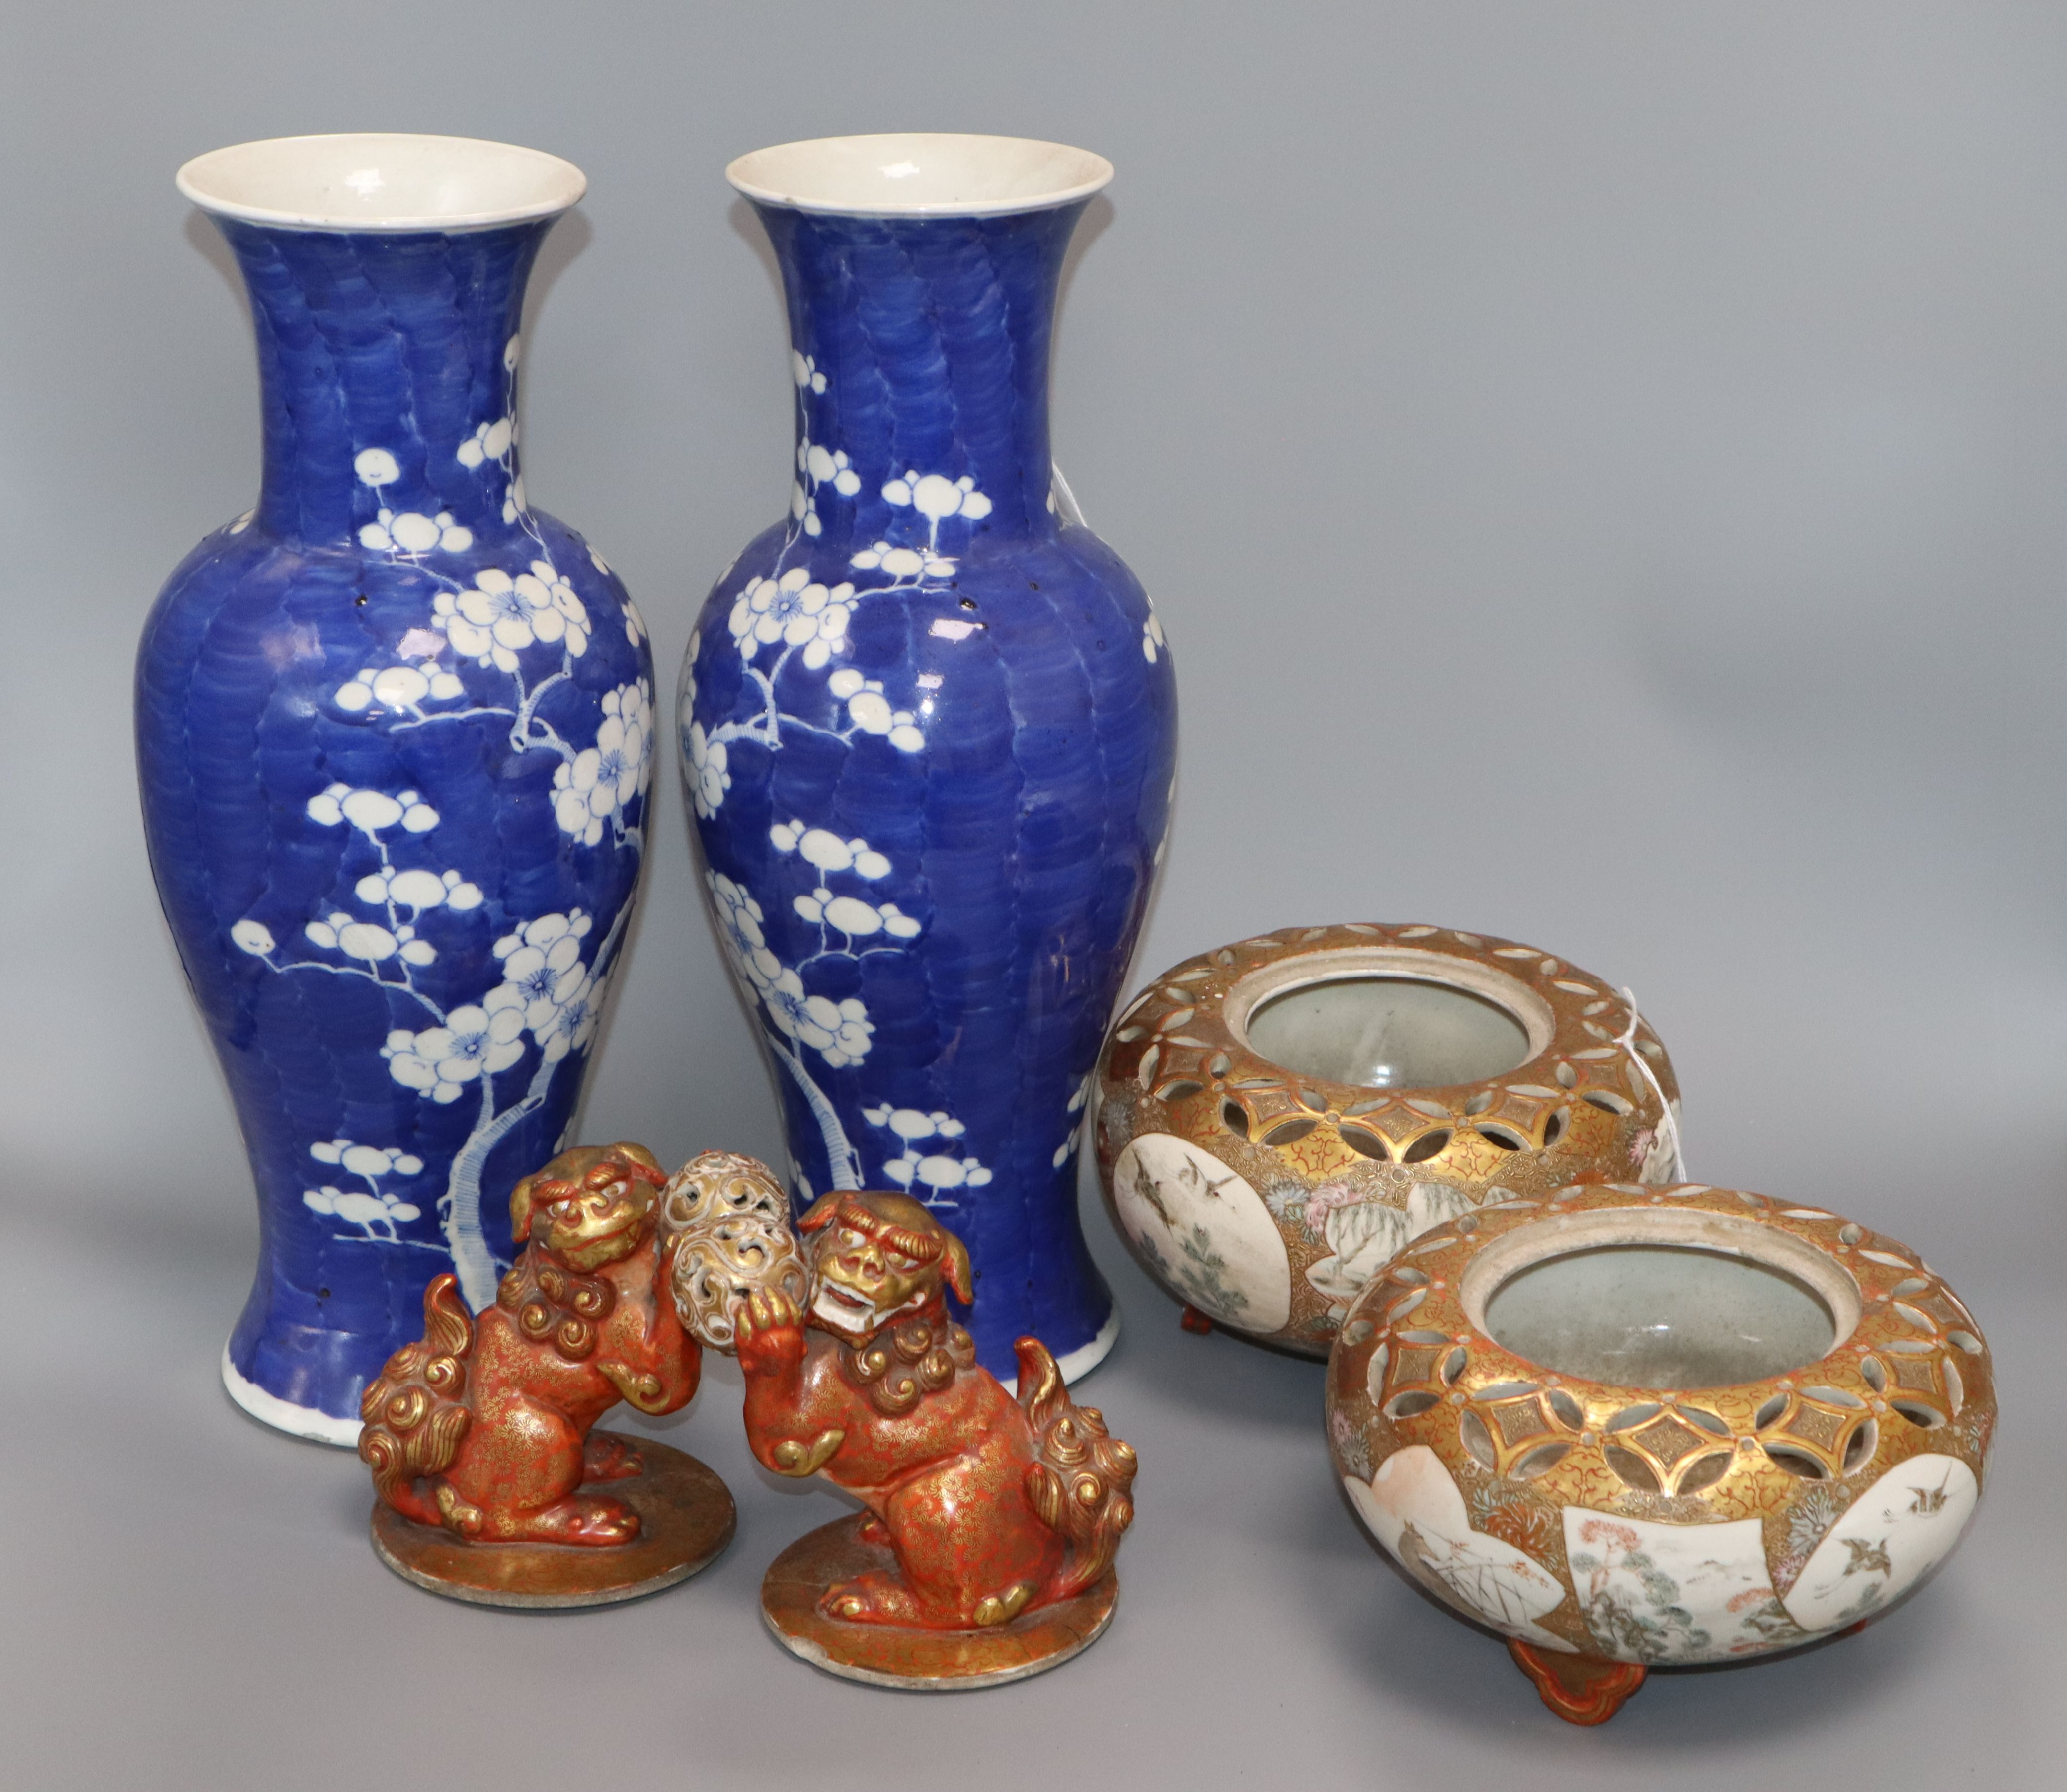 Lot 21 - A pair of 19th century Chinese vases, decorated with prunus on a blue ground and two matching Kutani